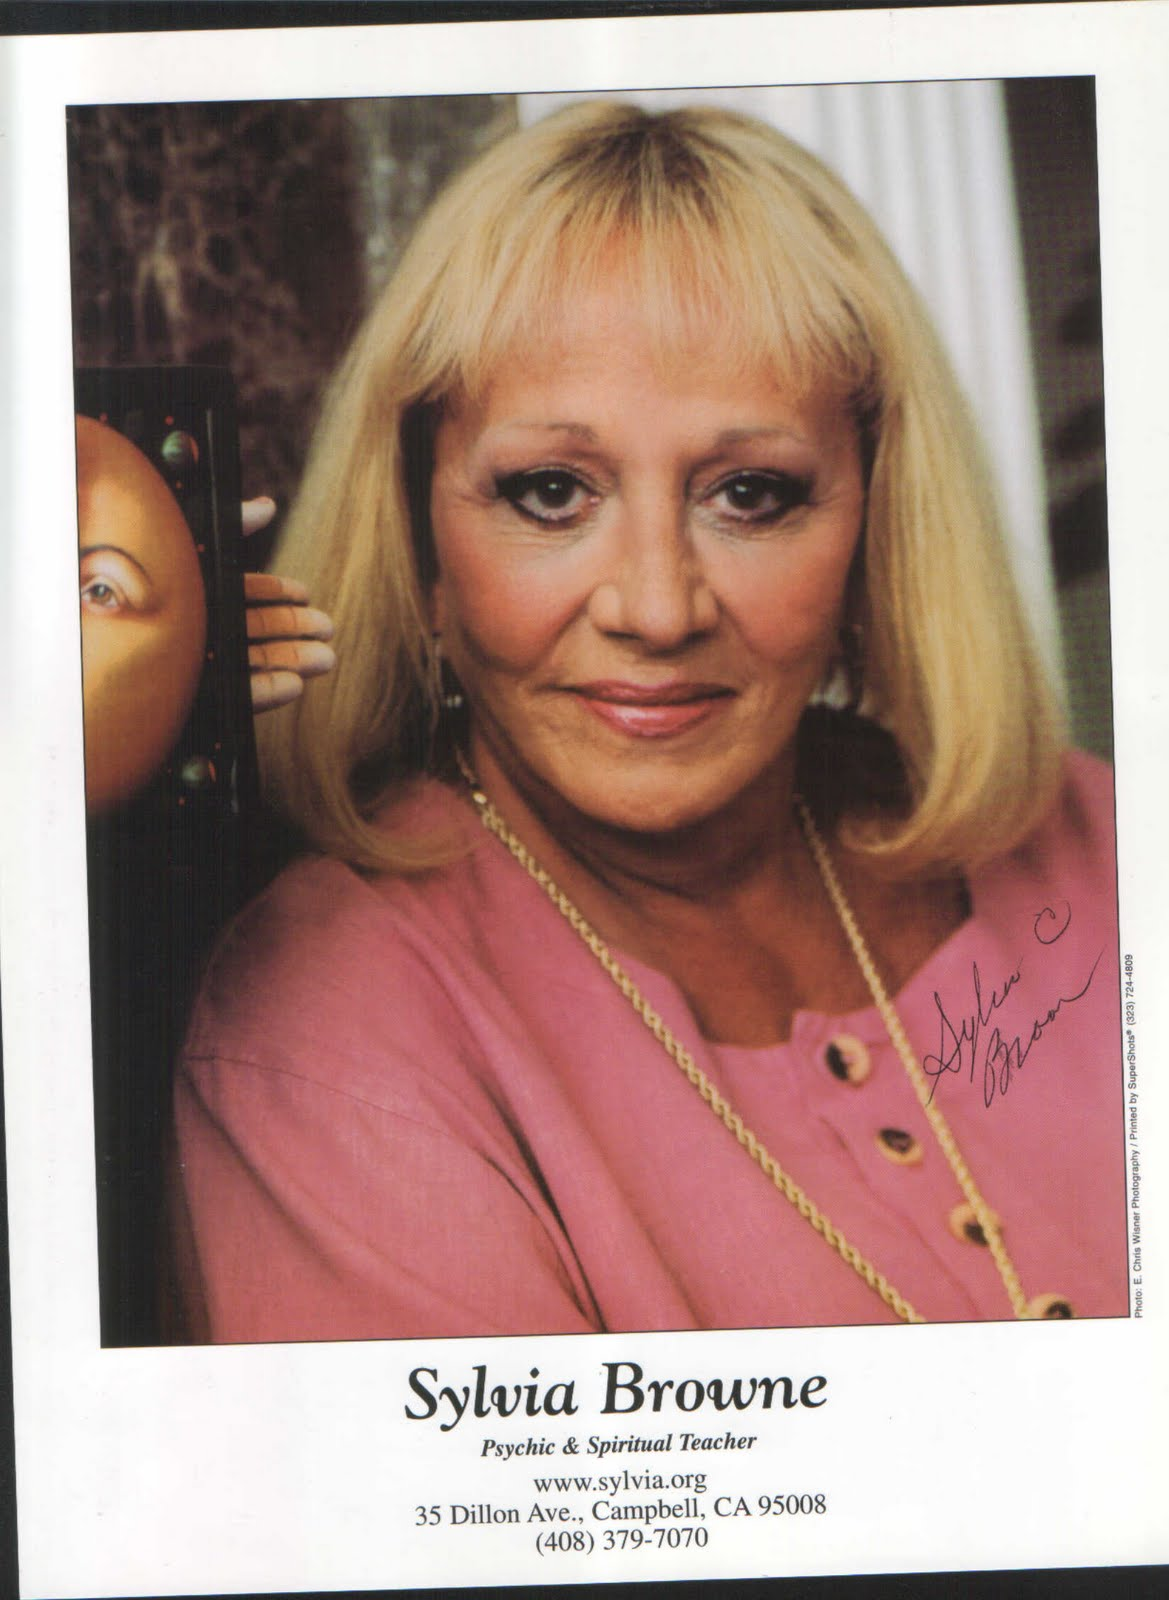 the most well known and talked about psychics today is Sylvia Browne